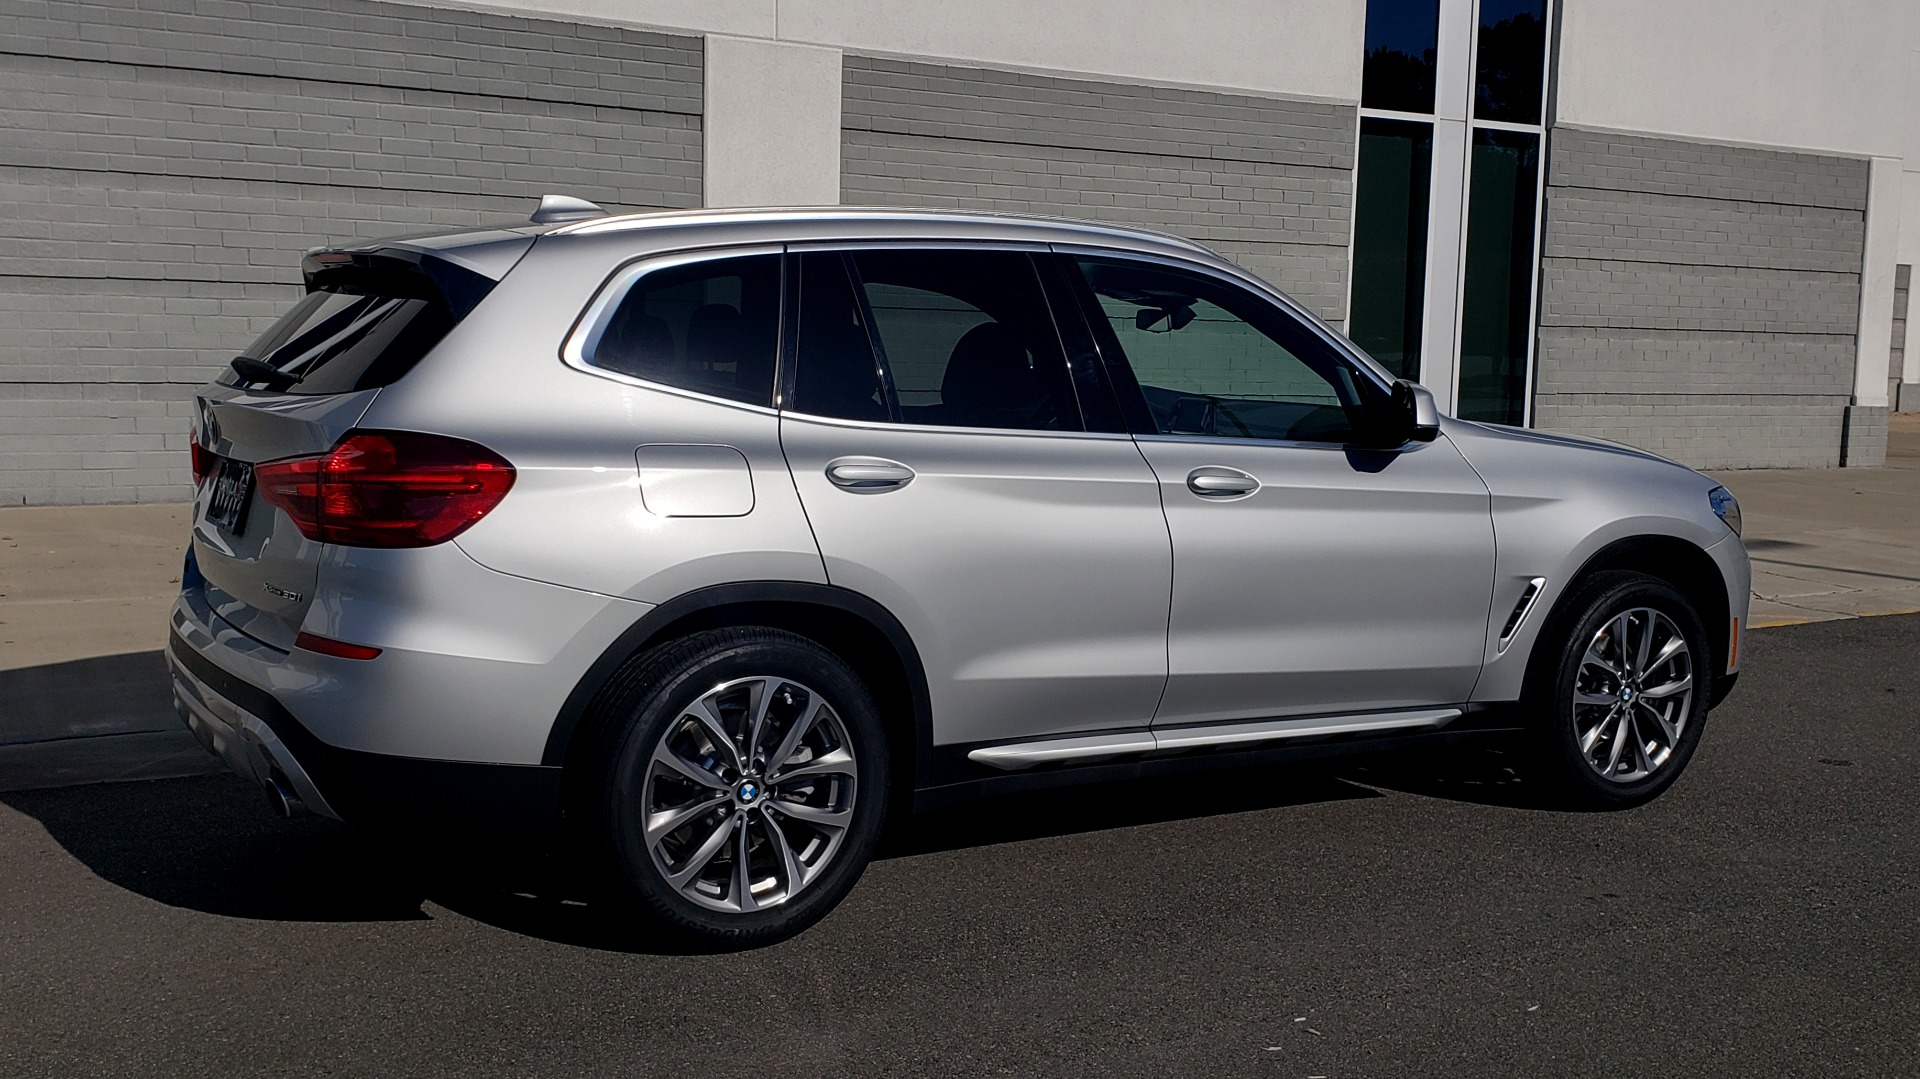 Used 2019 BMW X3 XDRIVE30I / DRVR ASST / PANO-ROOF / HTD STS / REARVIEW for sale $41,995 at Formula Imports in Charlotte NC 28227 8